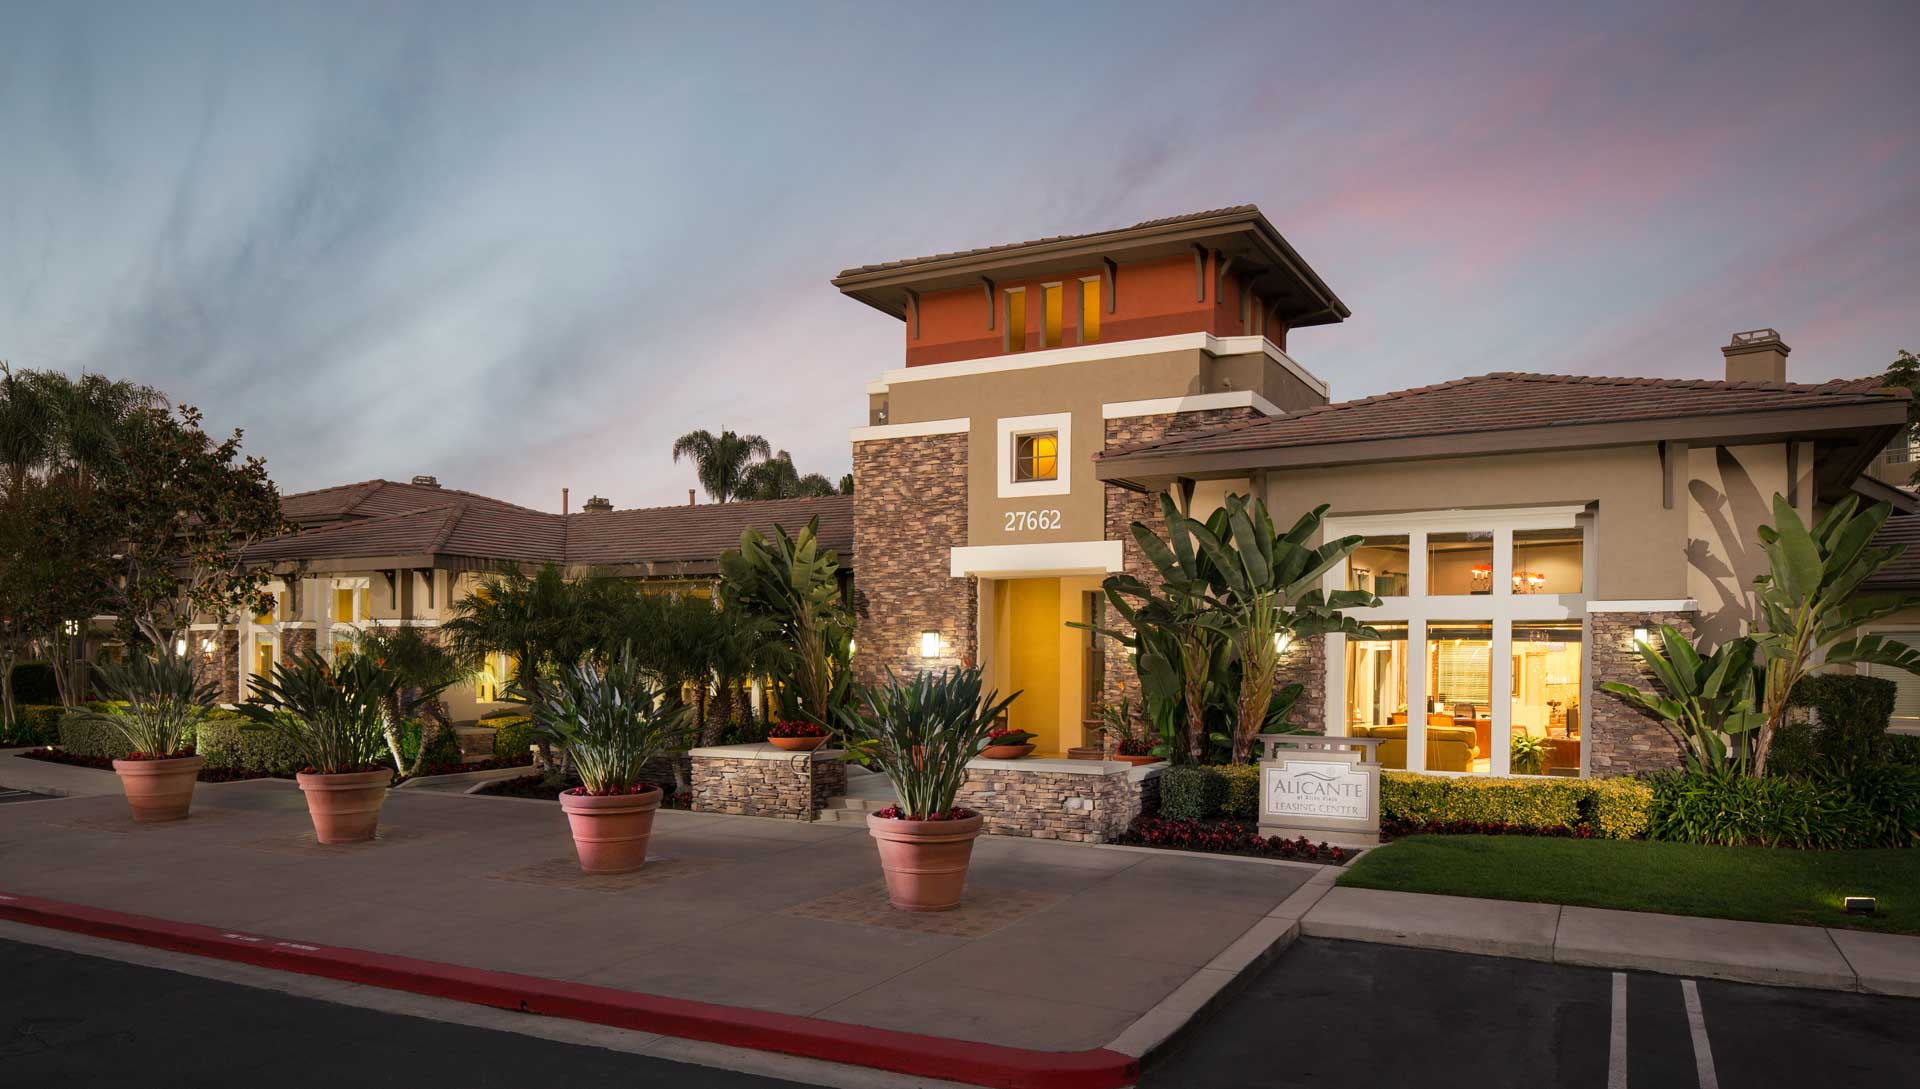 Apartments in Aliso Viejo, CA